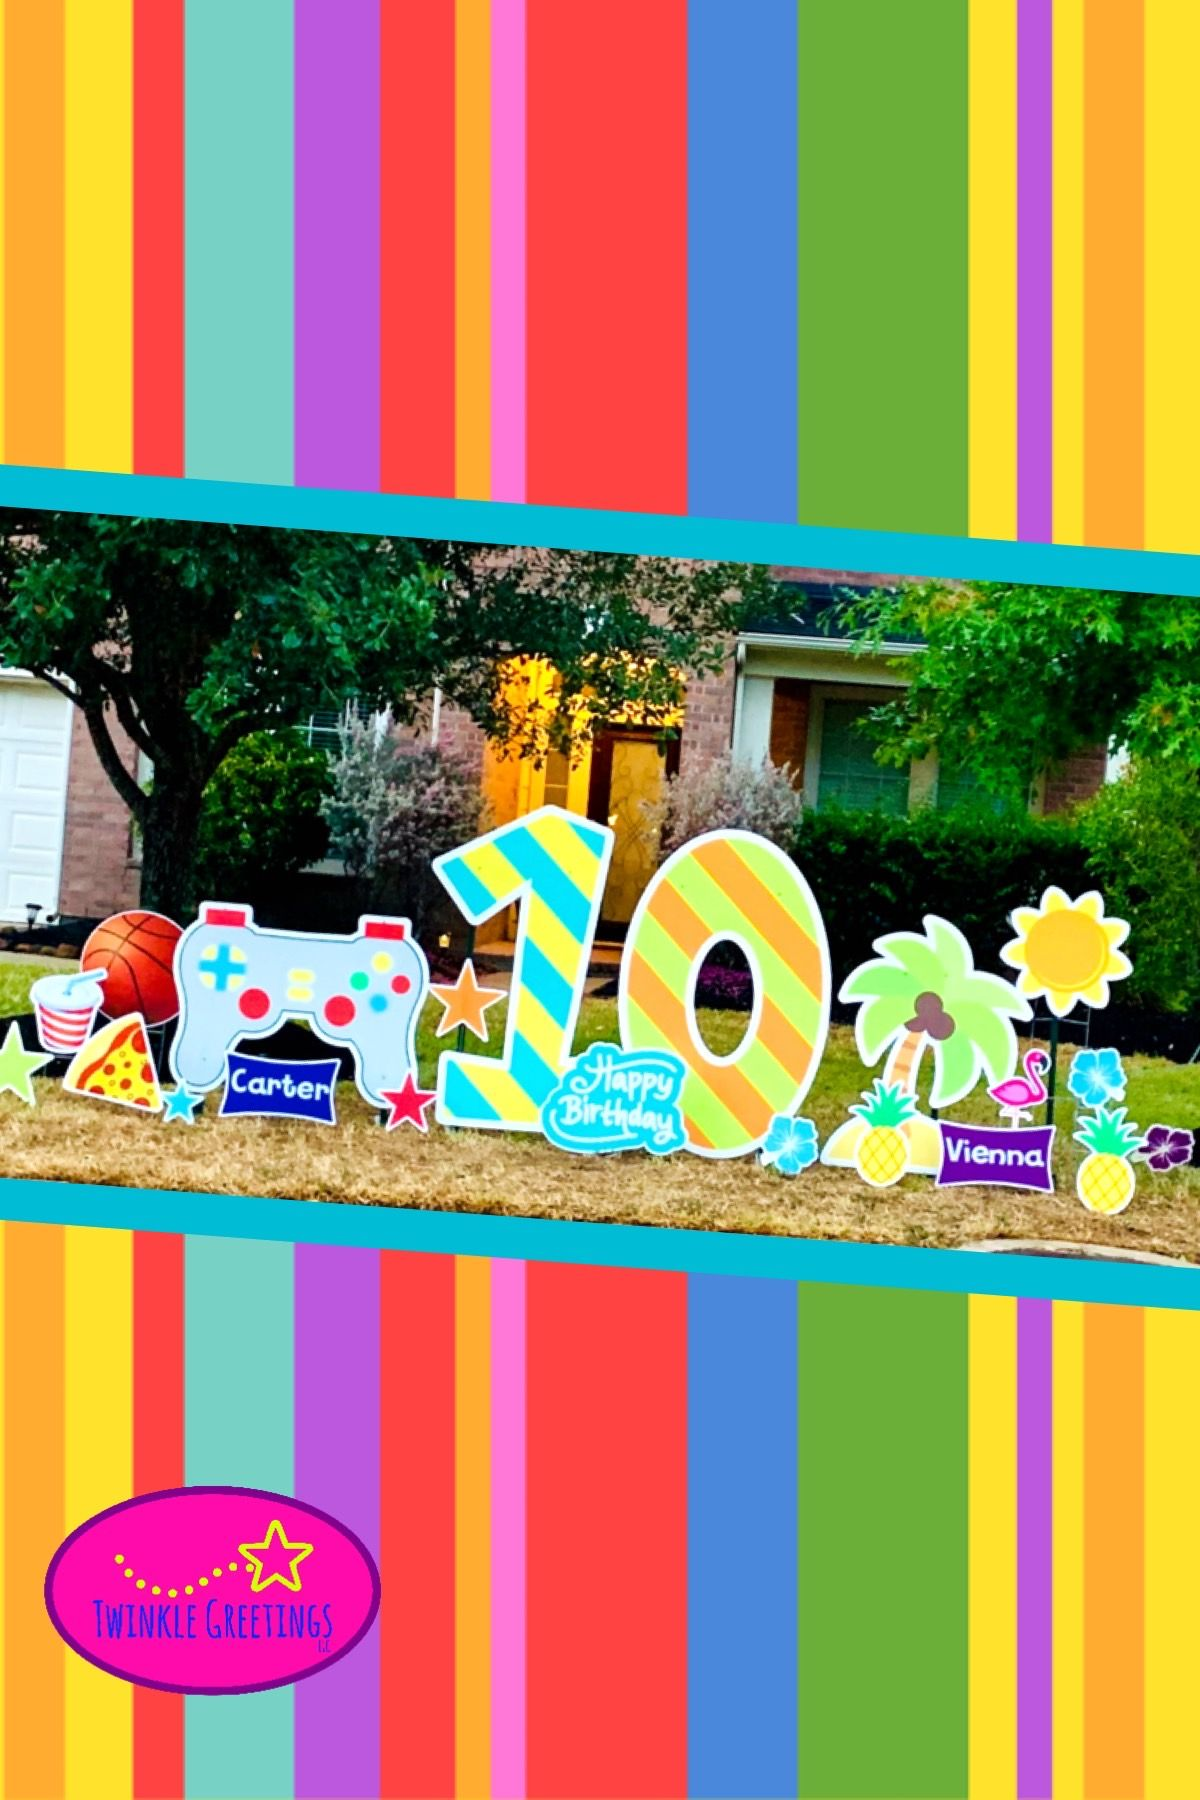 Rent a colorful, unique yard greeting for your next party ...